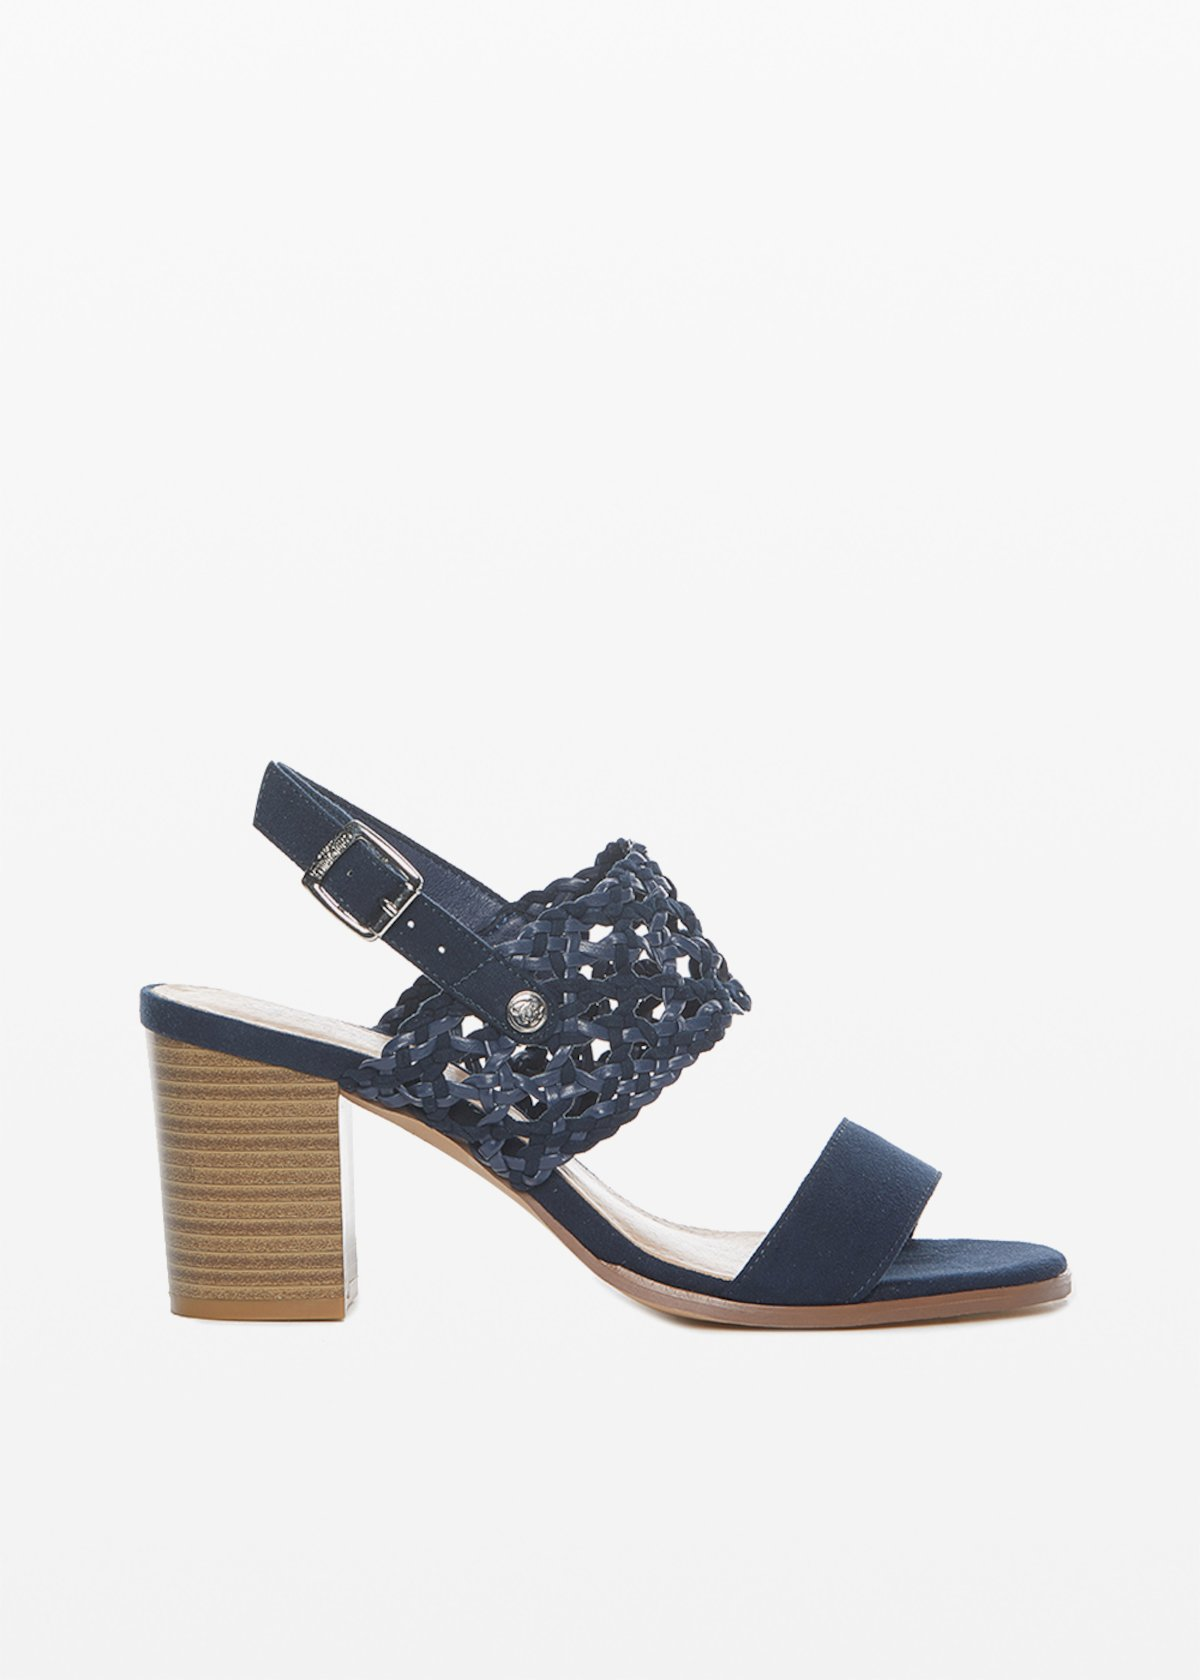 Saily faux suede sandals - Medium Blue - Woman - Category image